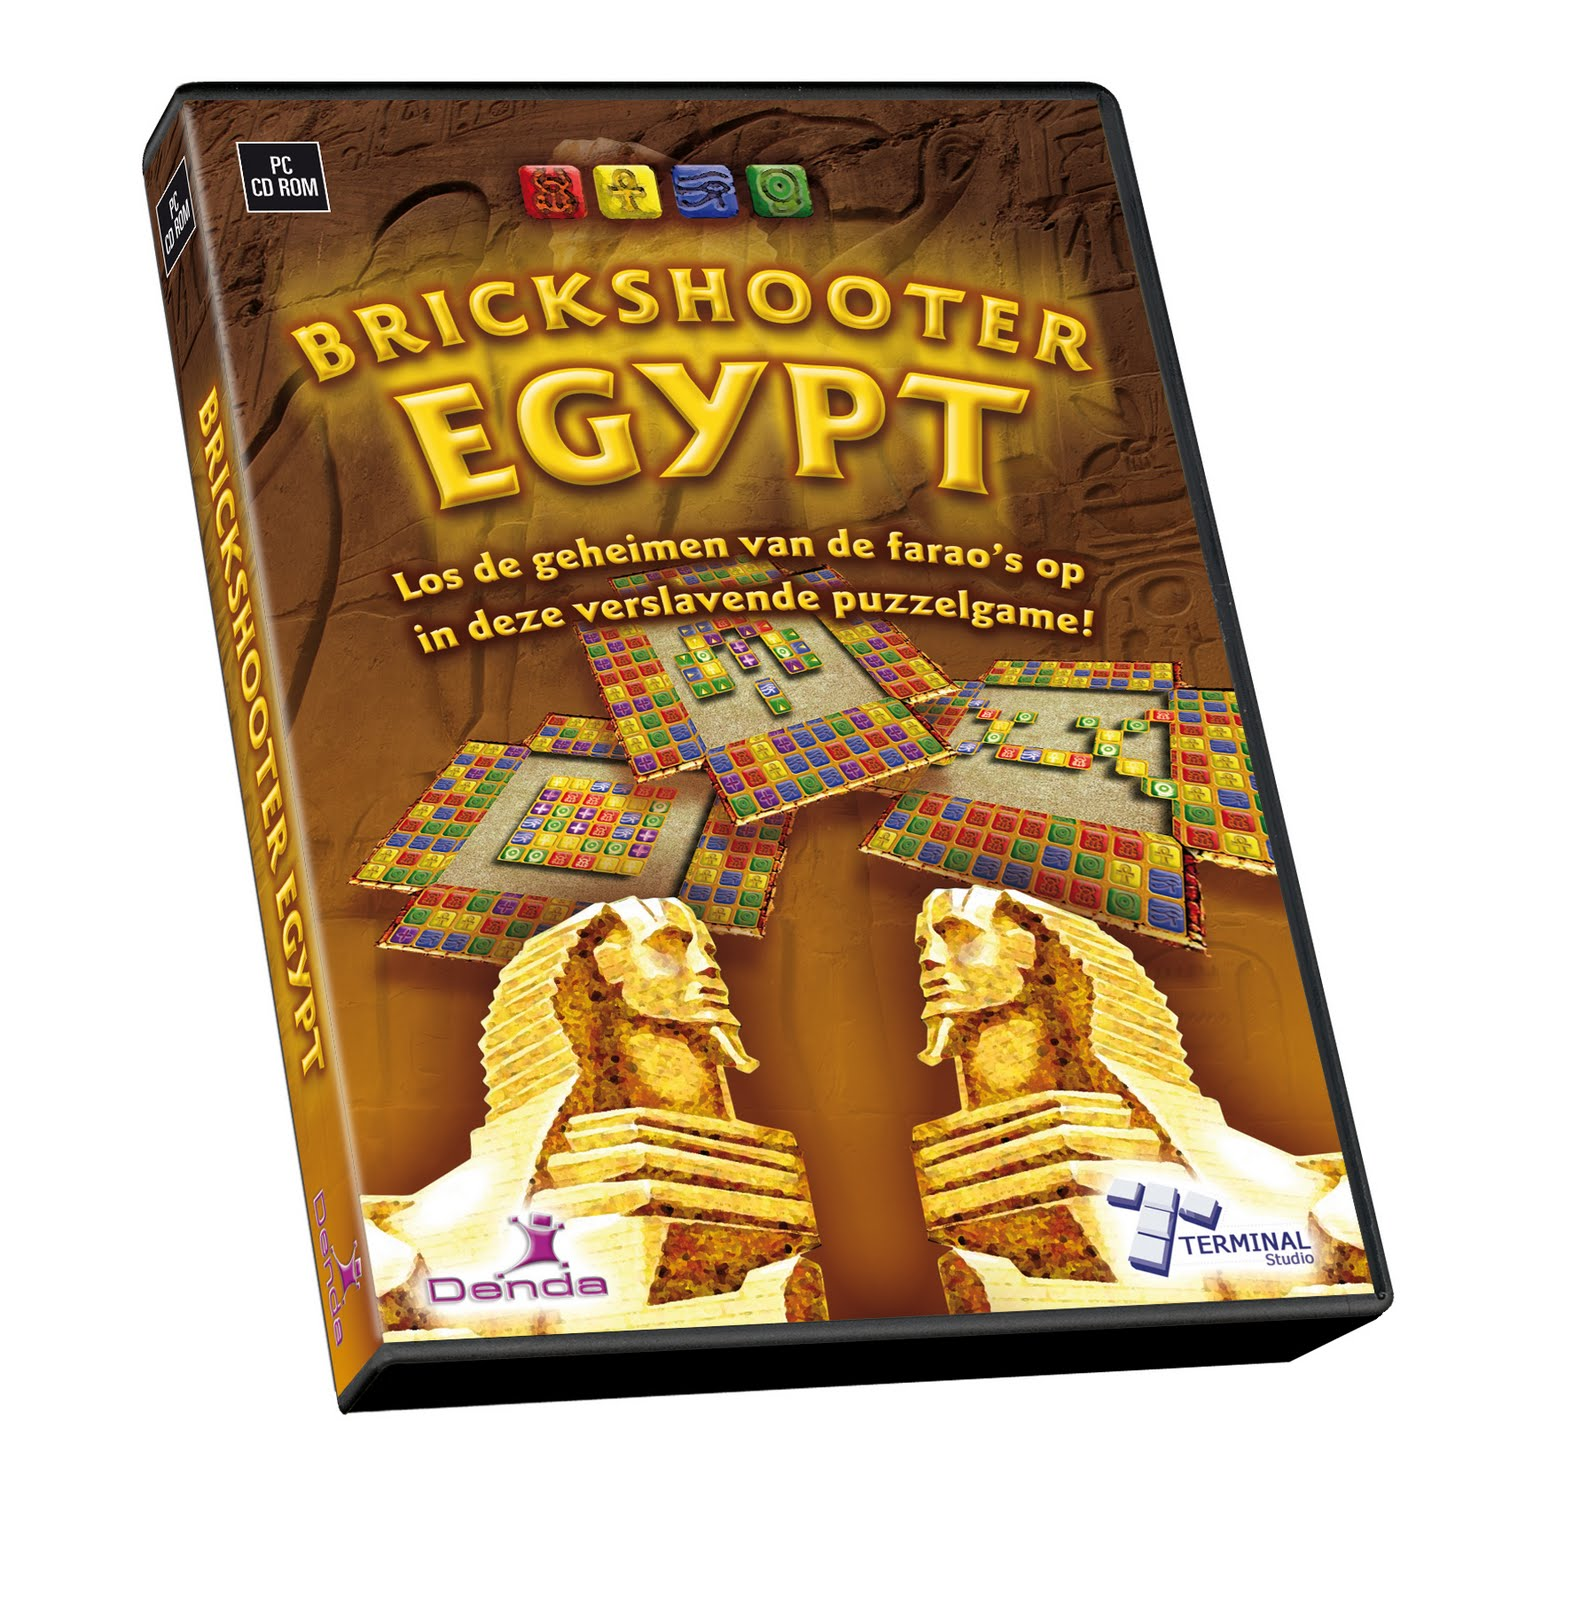 Brickshooter für apple macintosh mac os x.